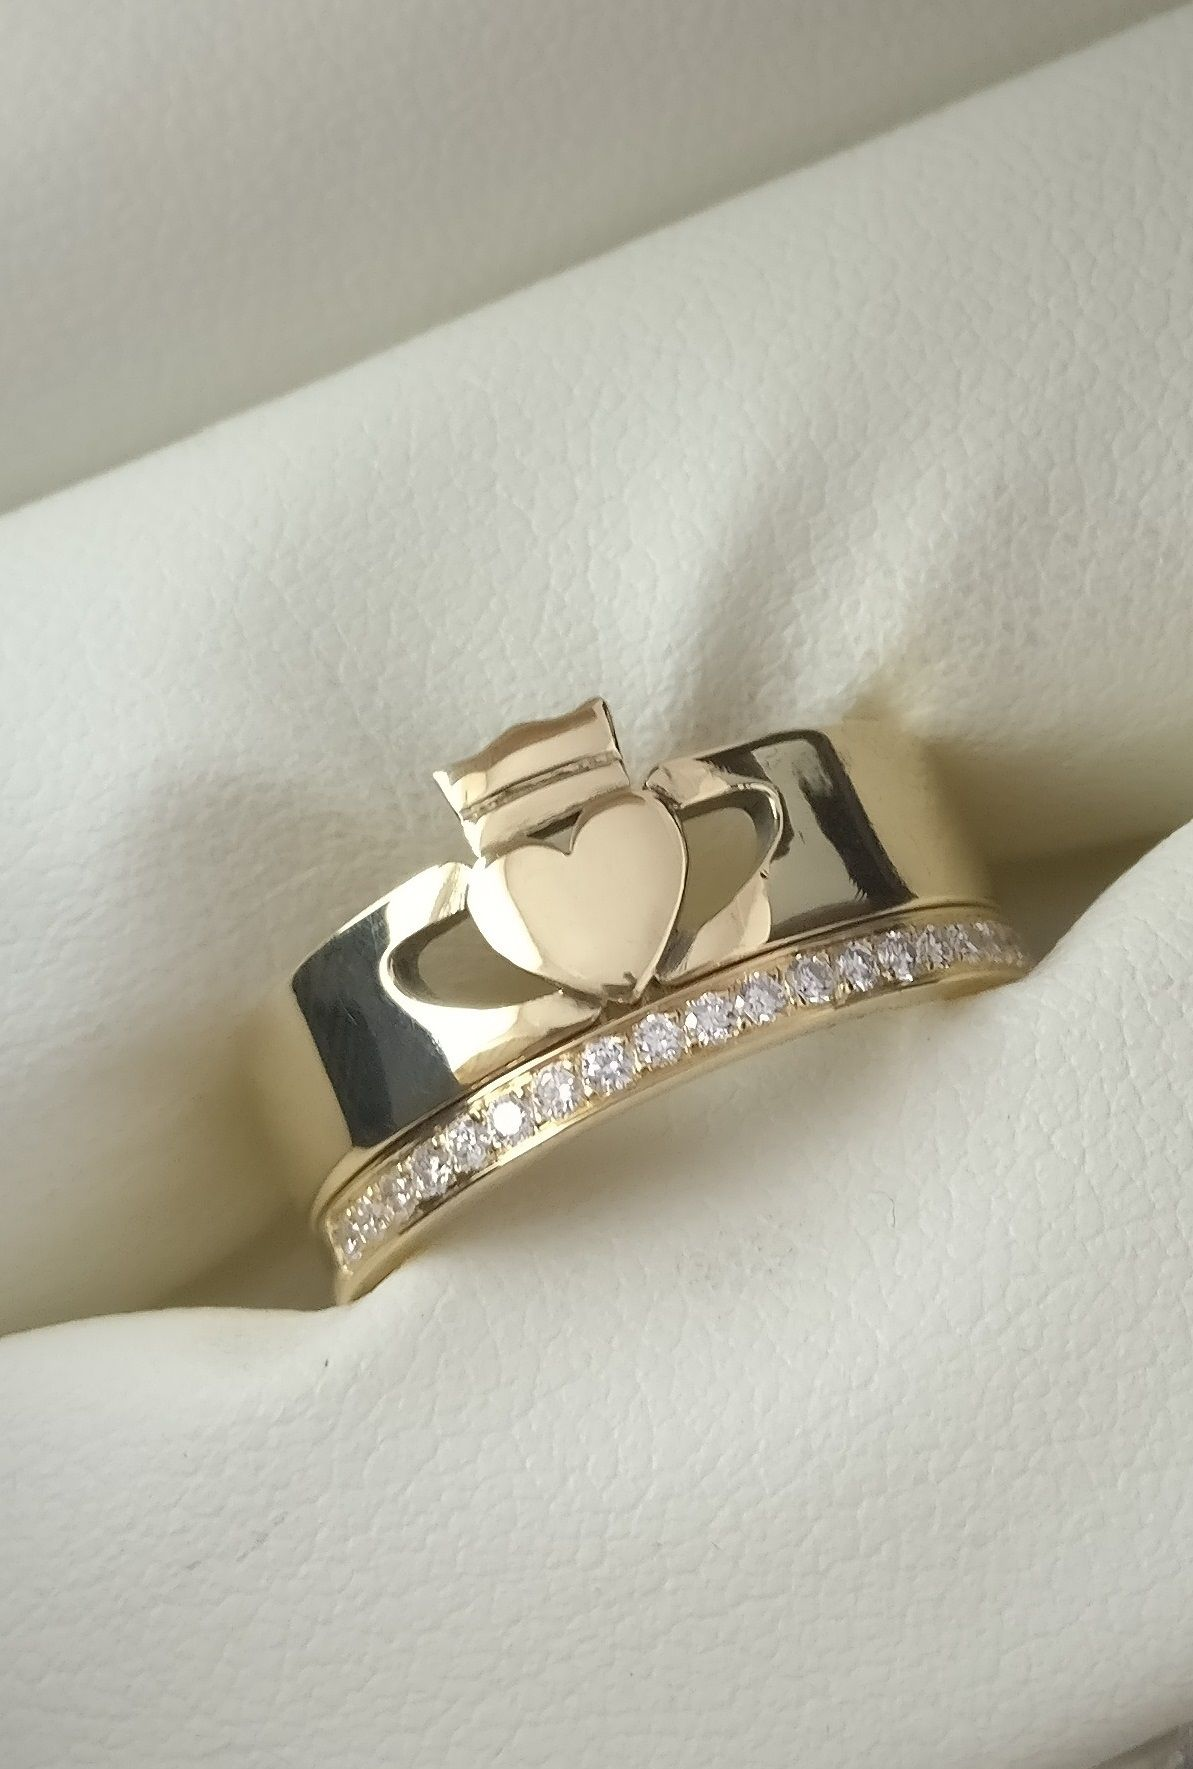 Gold Claddagh Ring Women's Modern Luxury engagement